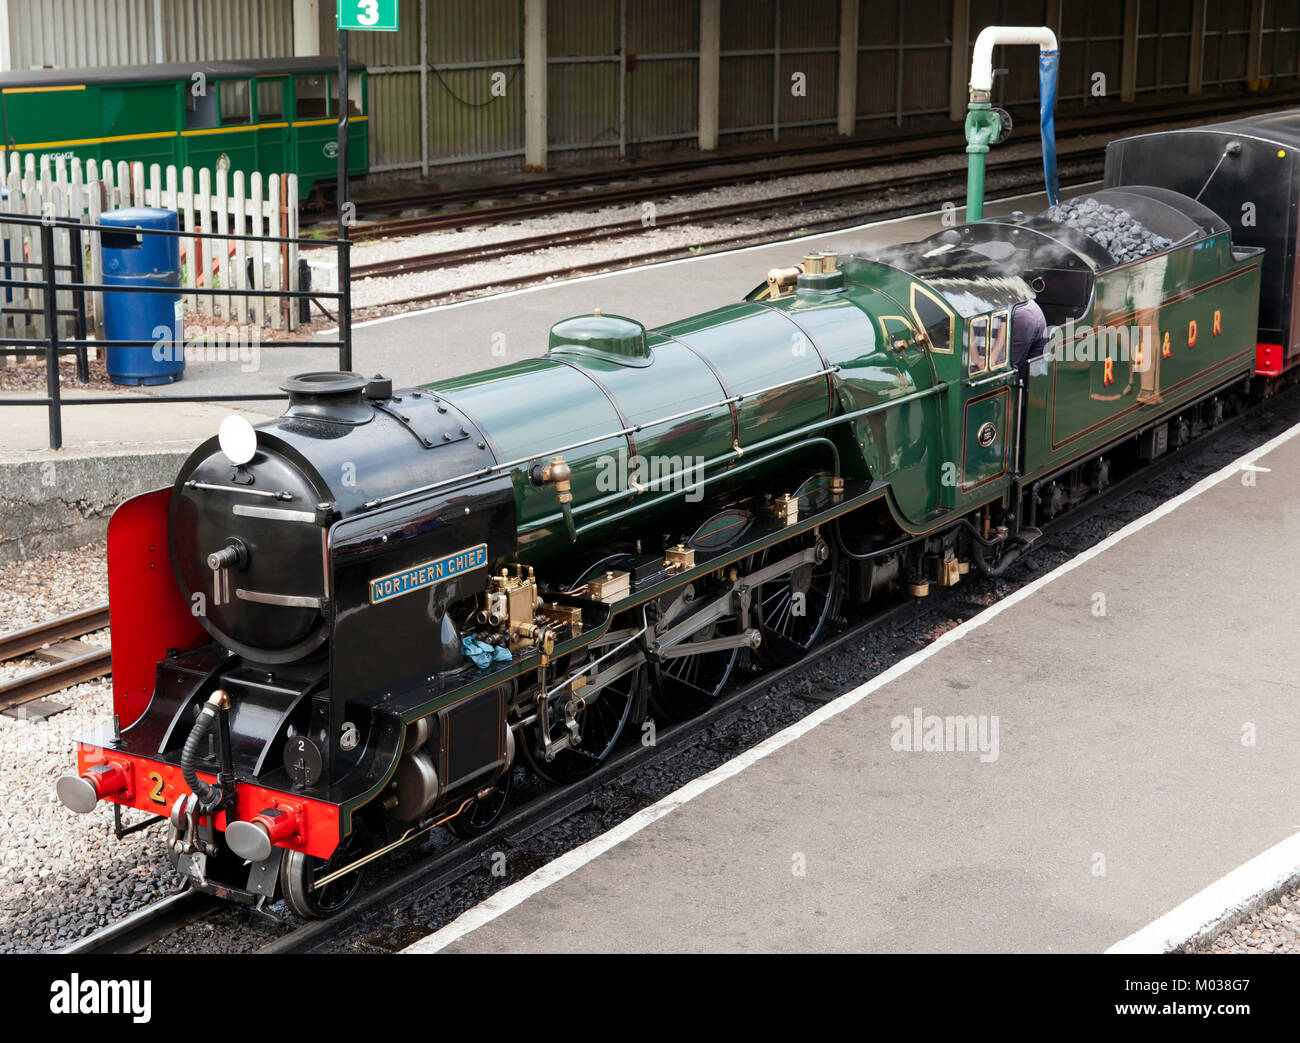 The Steam Locomotive (Engine No.2 ),  Northern Chief, at New Romney Station, RH&D Railway, Kent - Stock Image